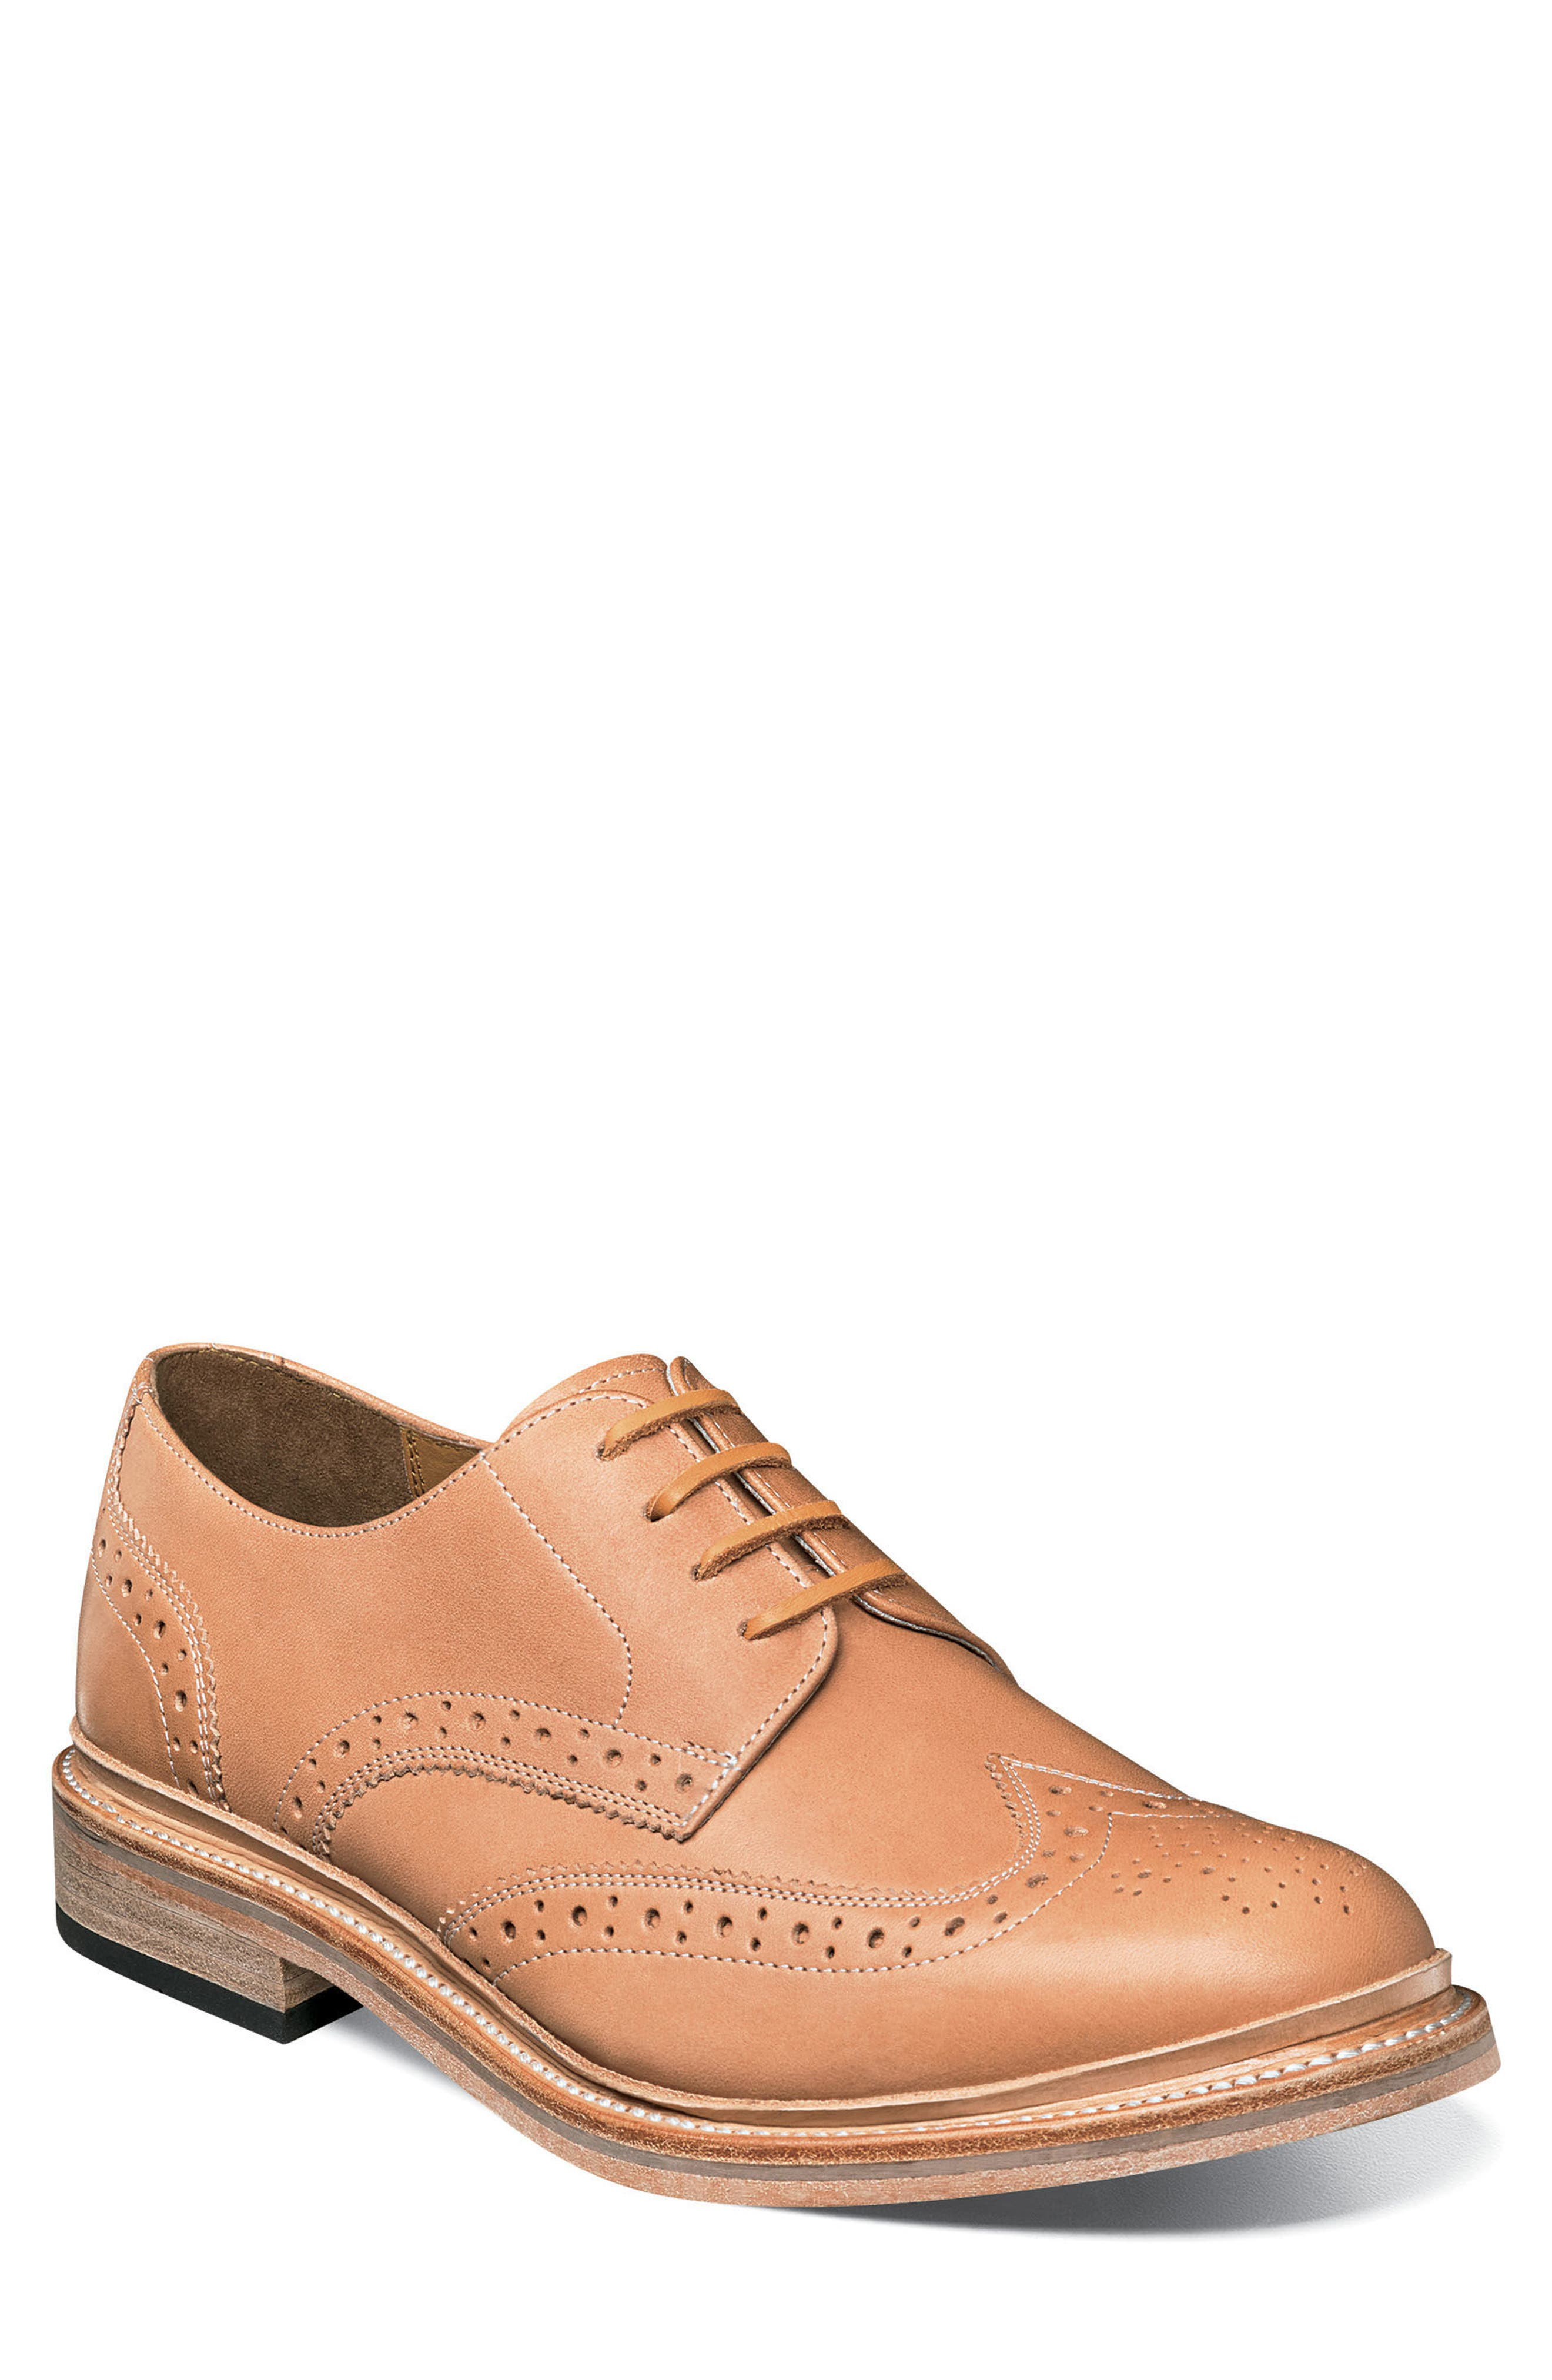 M2 Wingtip Derby,                             Main thumbnail 1, color,                             NATURAL LEATHER